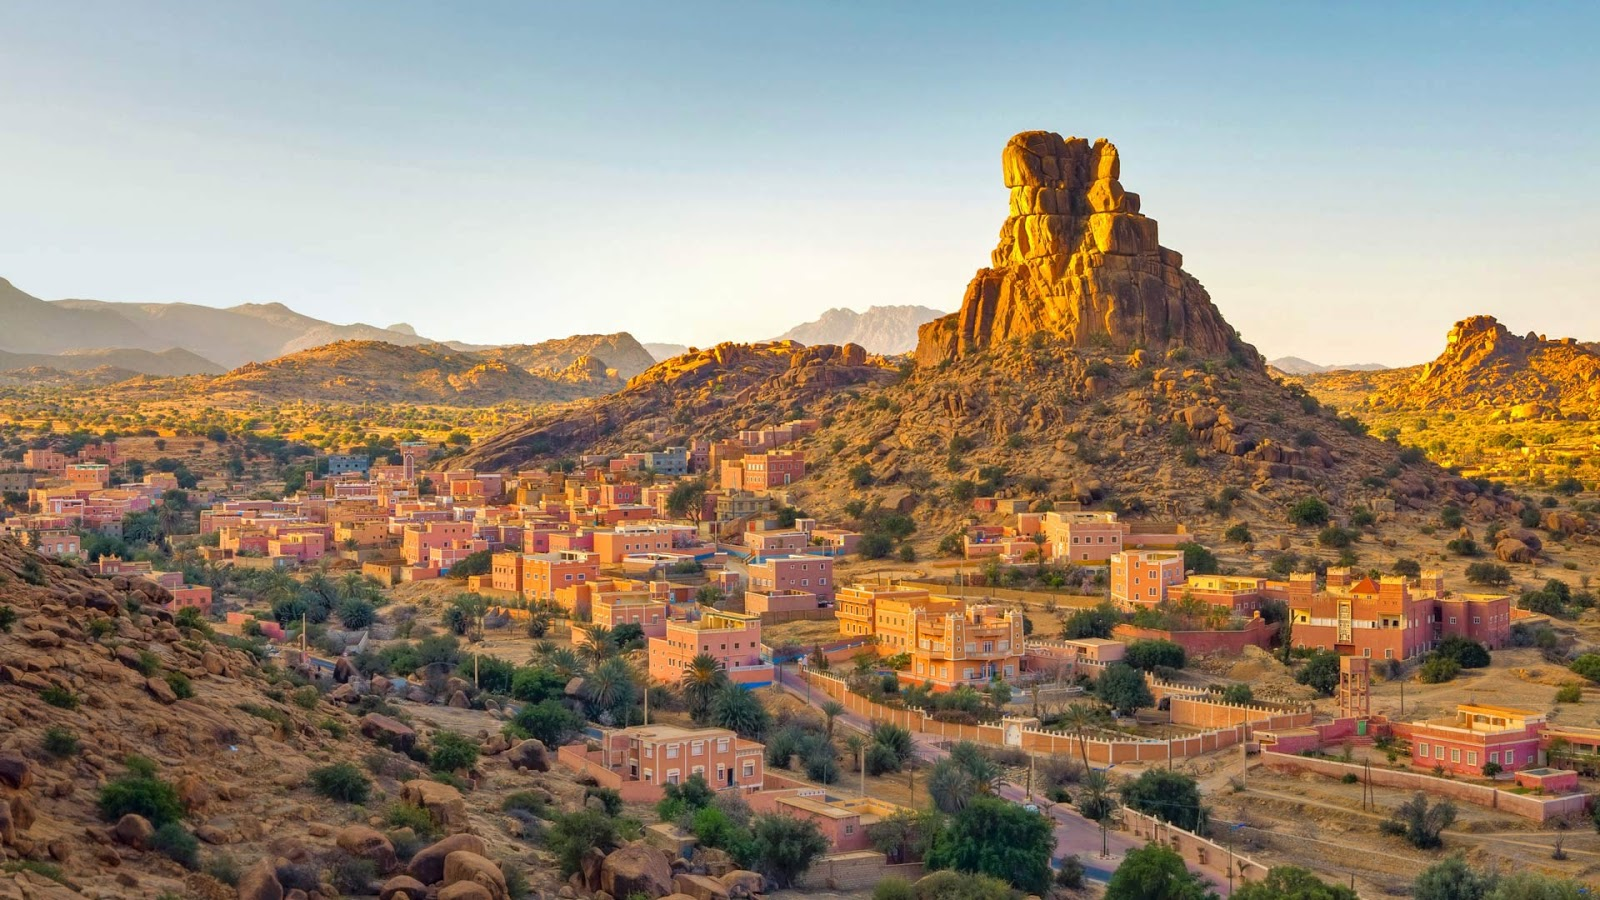 The village of Aguerd Oudad and the larger town of Tafraout in Morocco